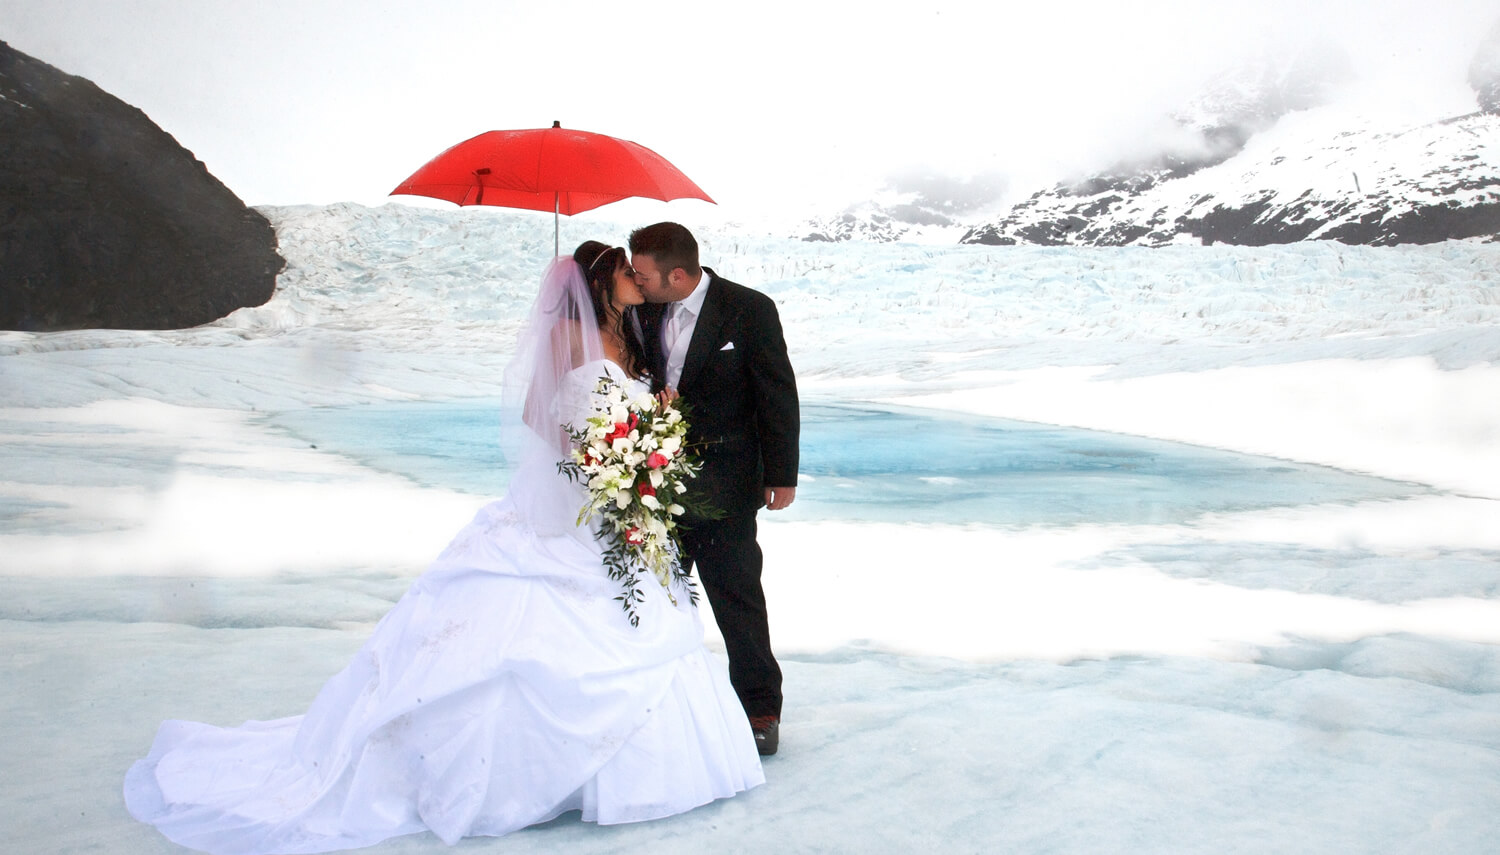 First kiss on the glacier beside a clear blue glacier pond under a bright red umbrella